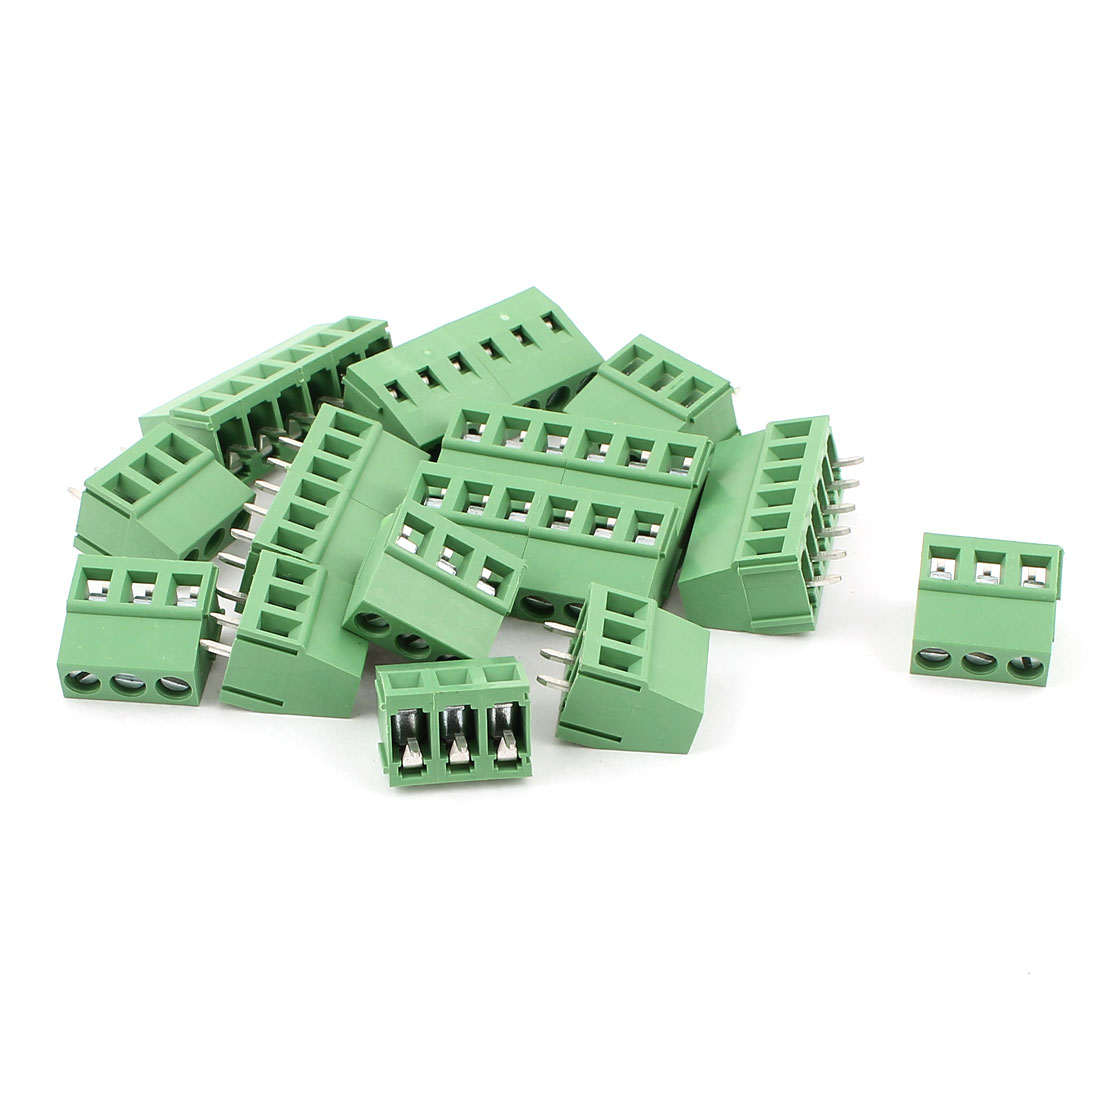 10 Pcs AC 300V 10A 6 Pins PCB Screw Terminal Block Connector 5.0mm Pitch Green